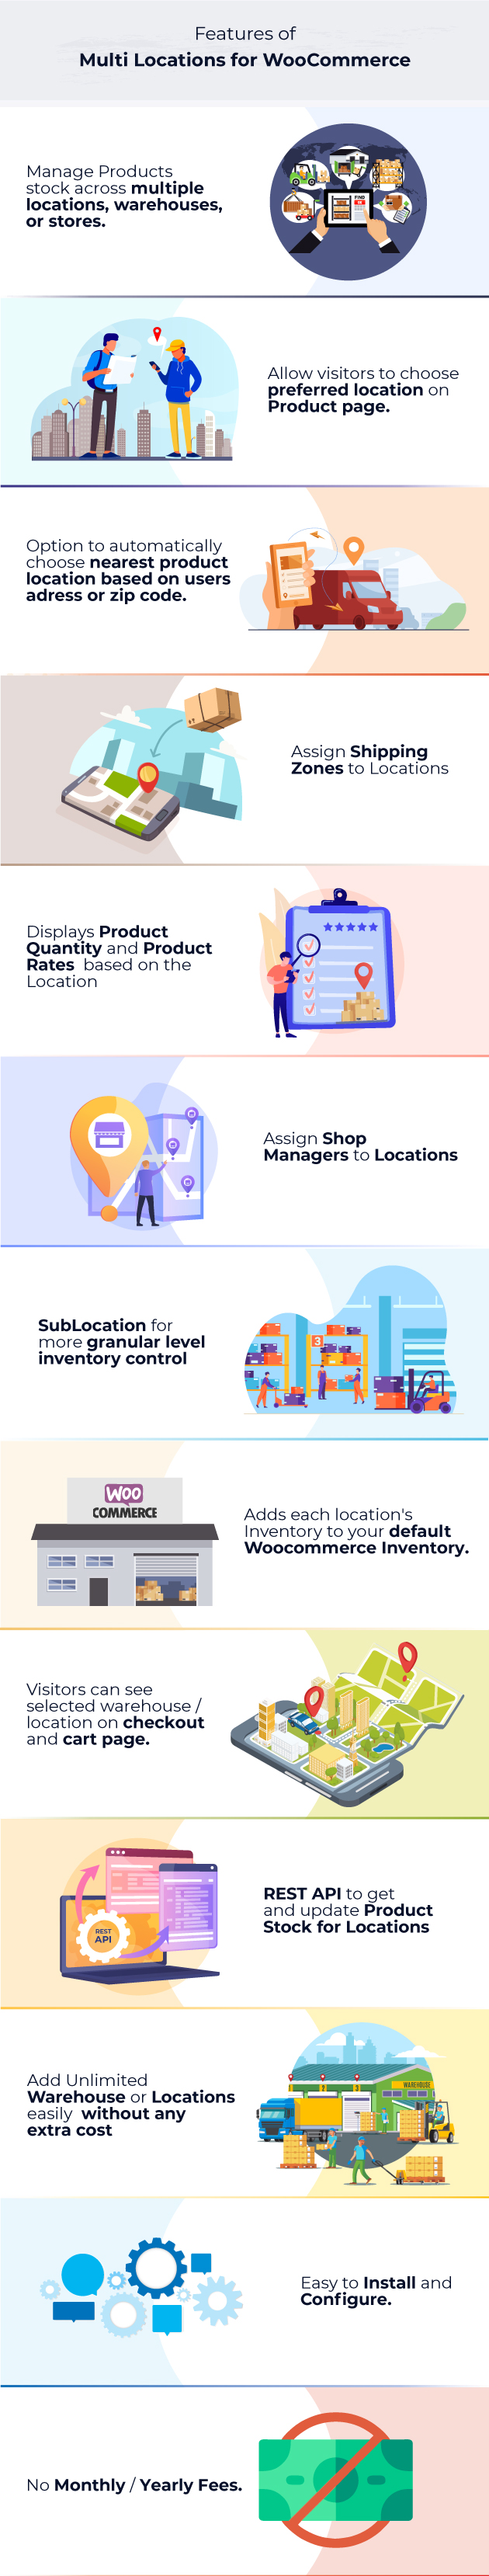 WooCommerce Multi Locations Inventory Management - 2